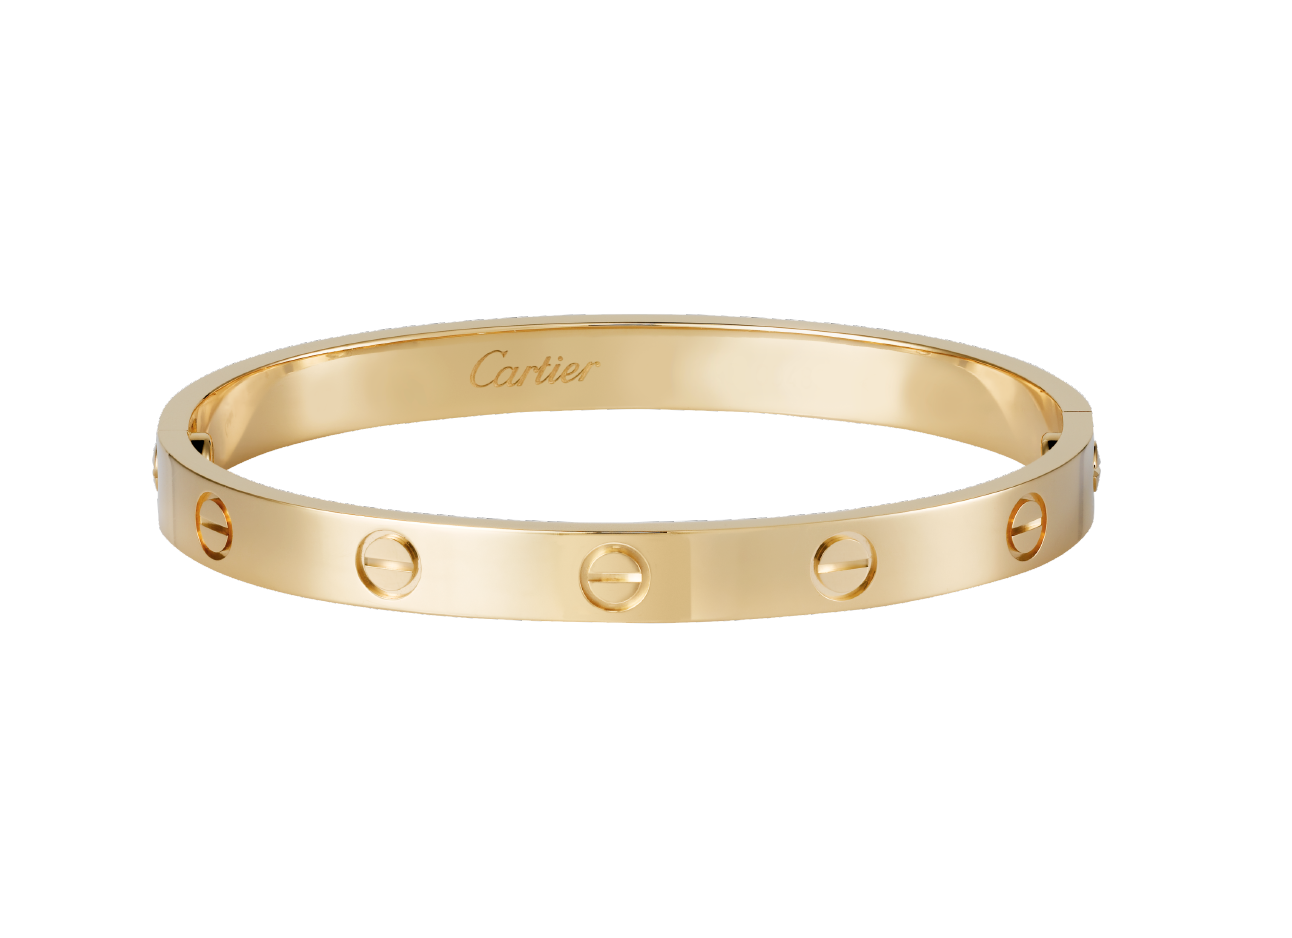 Cartier Love Bracelet Facts 10 Things You Didn T Know About The Bangle